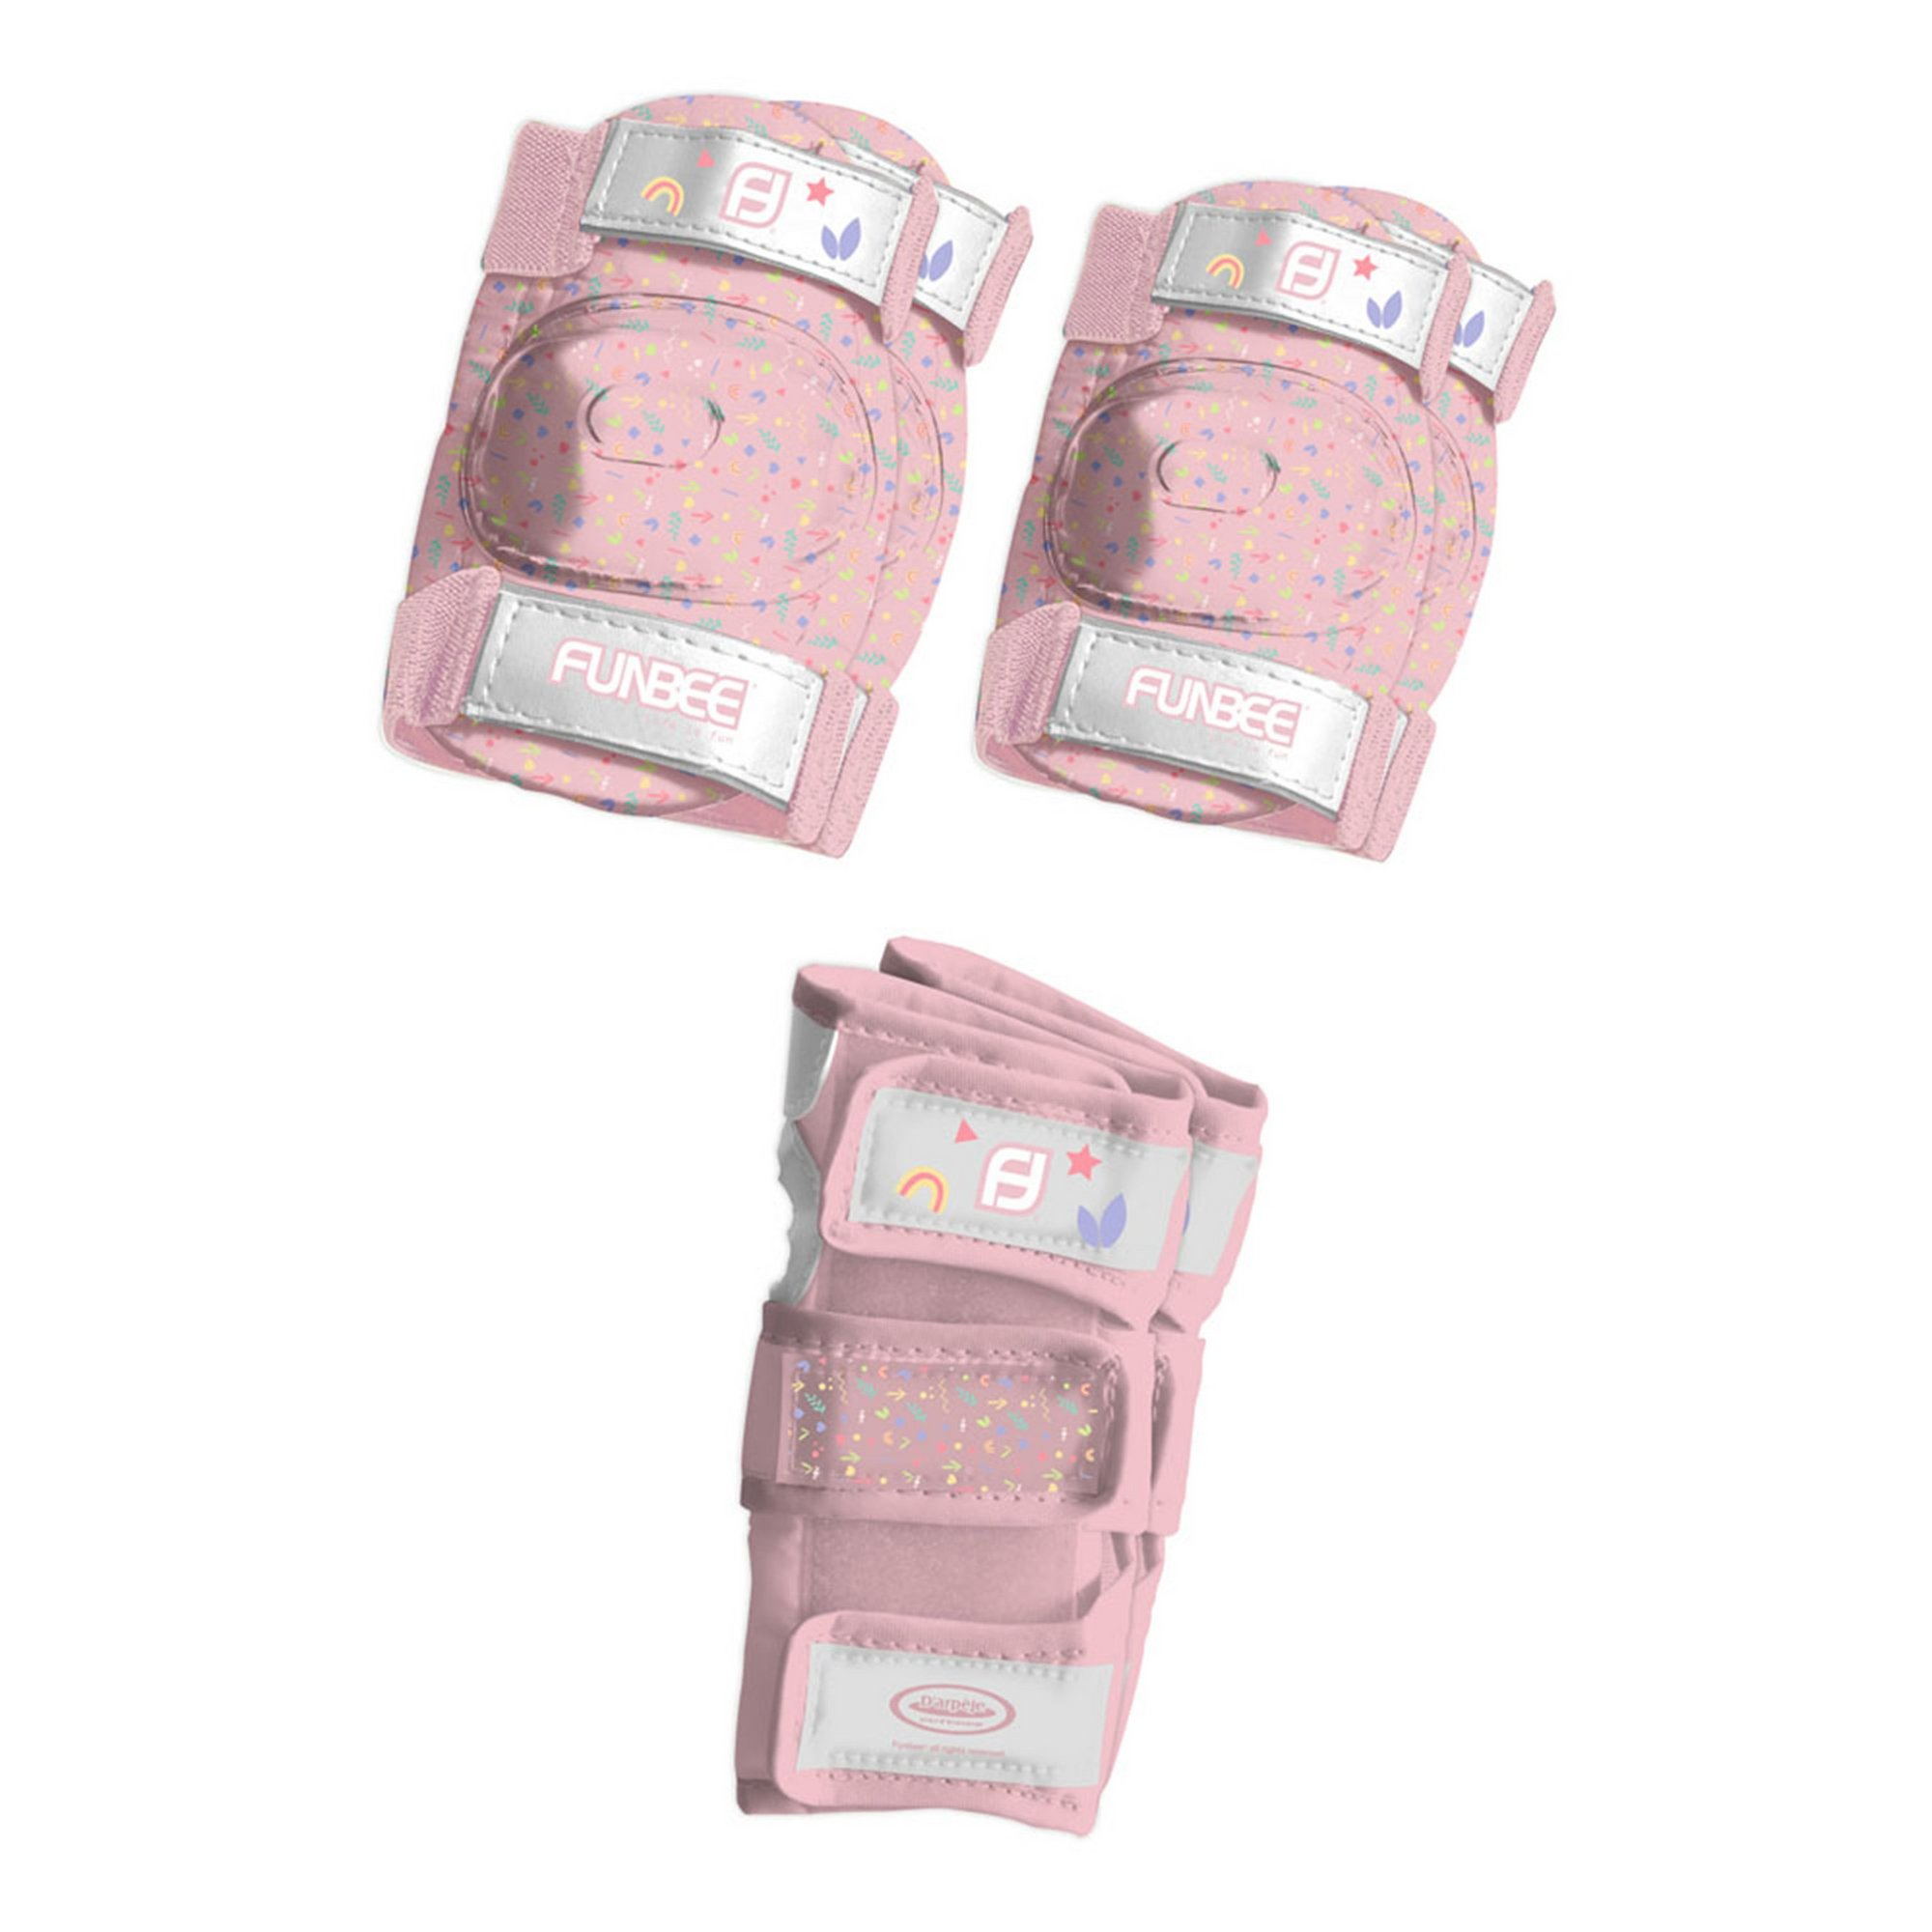 Image of Funbee Girls Extra Small Wrist Guards&#44 Elbow Pads and Small Kn...